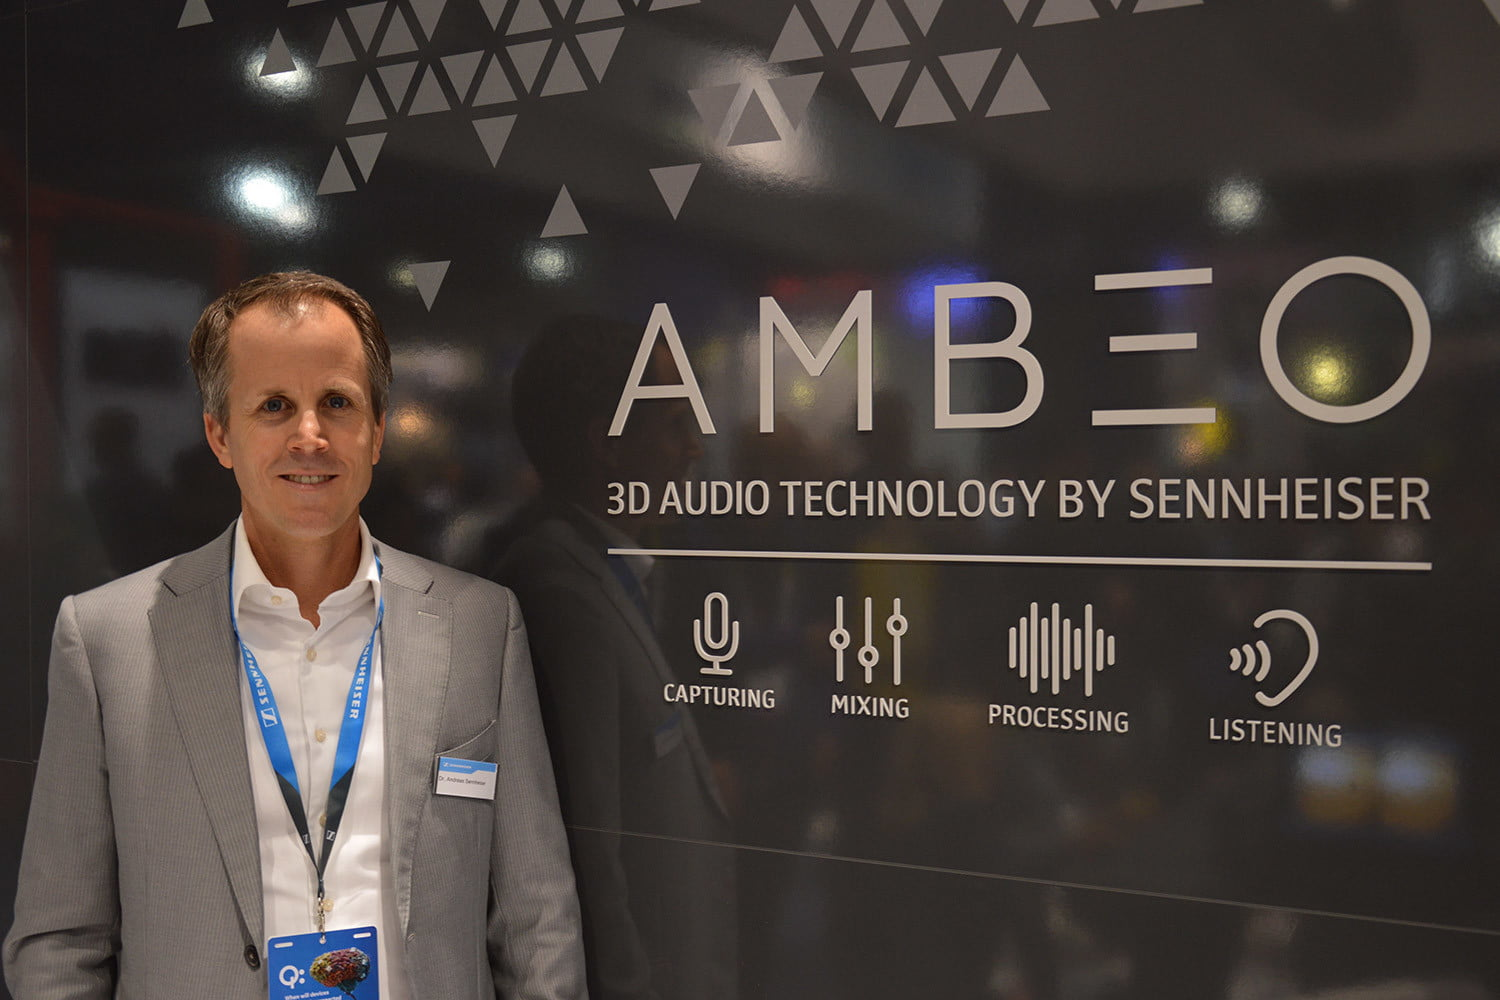 dr andreas sennheiser interview ambeo vr 3d surround sound ces